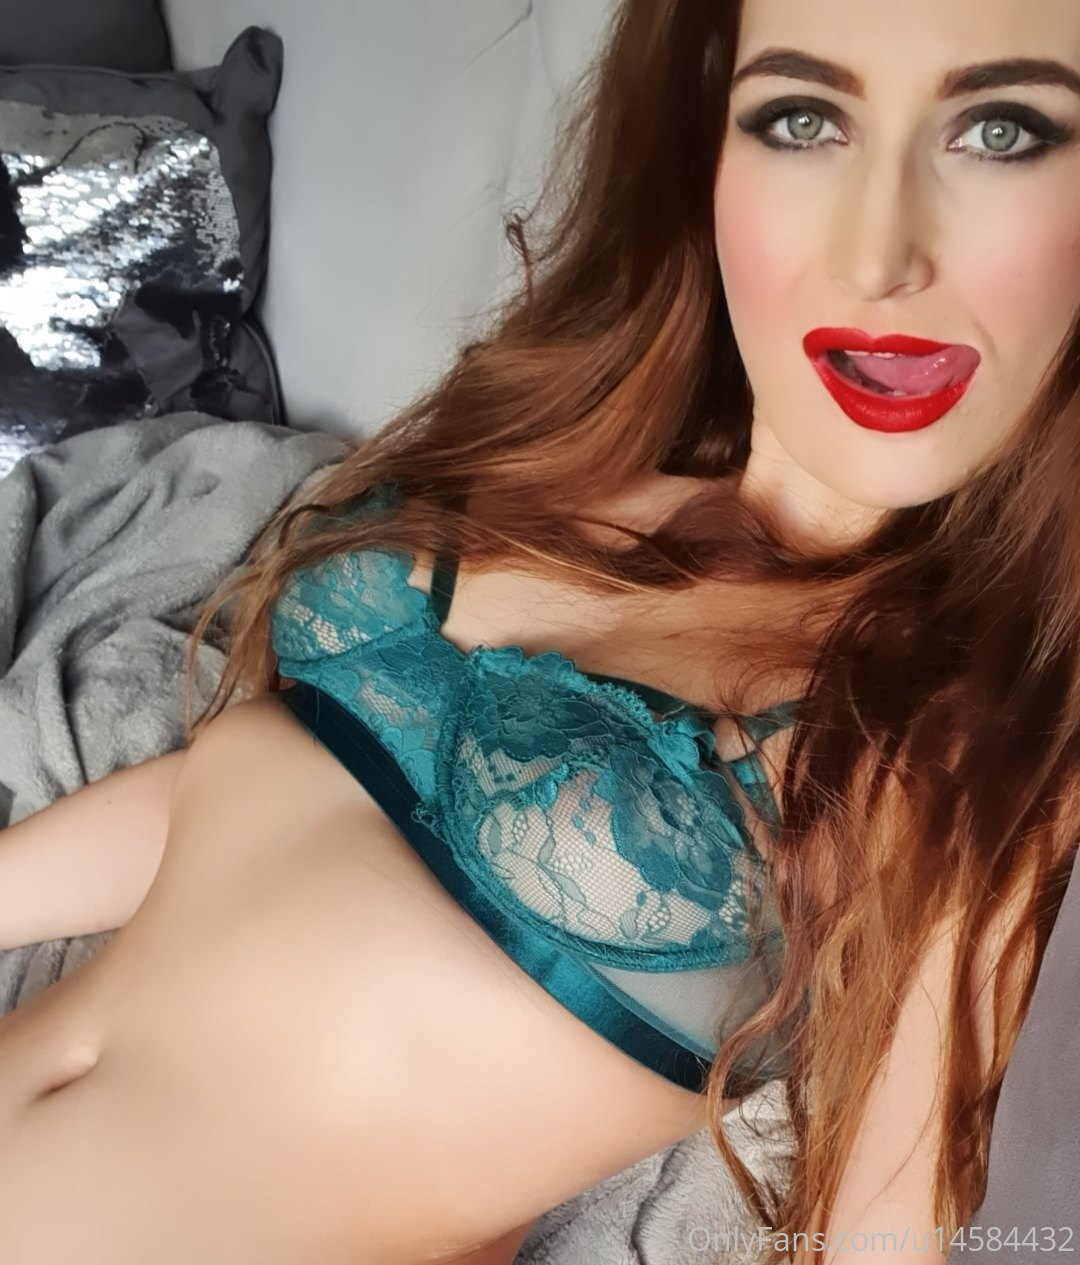 Lucy Rose, Lucy Rose93, Onlyfans 0240